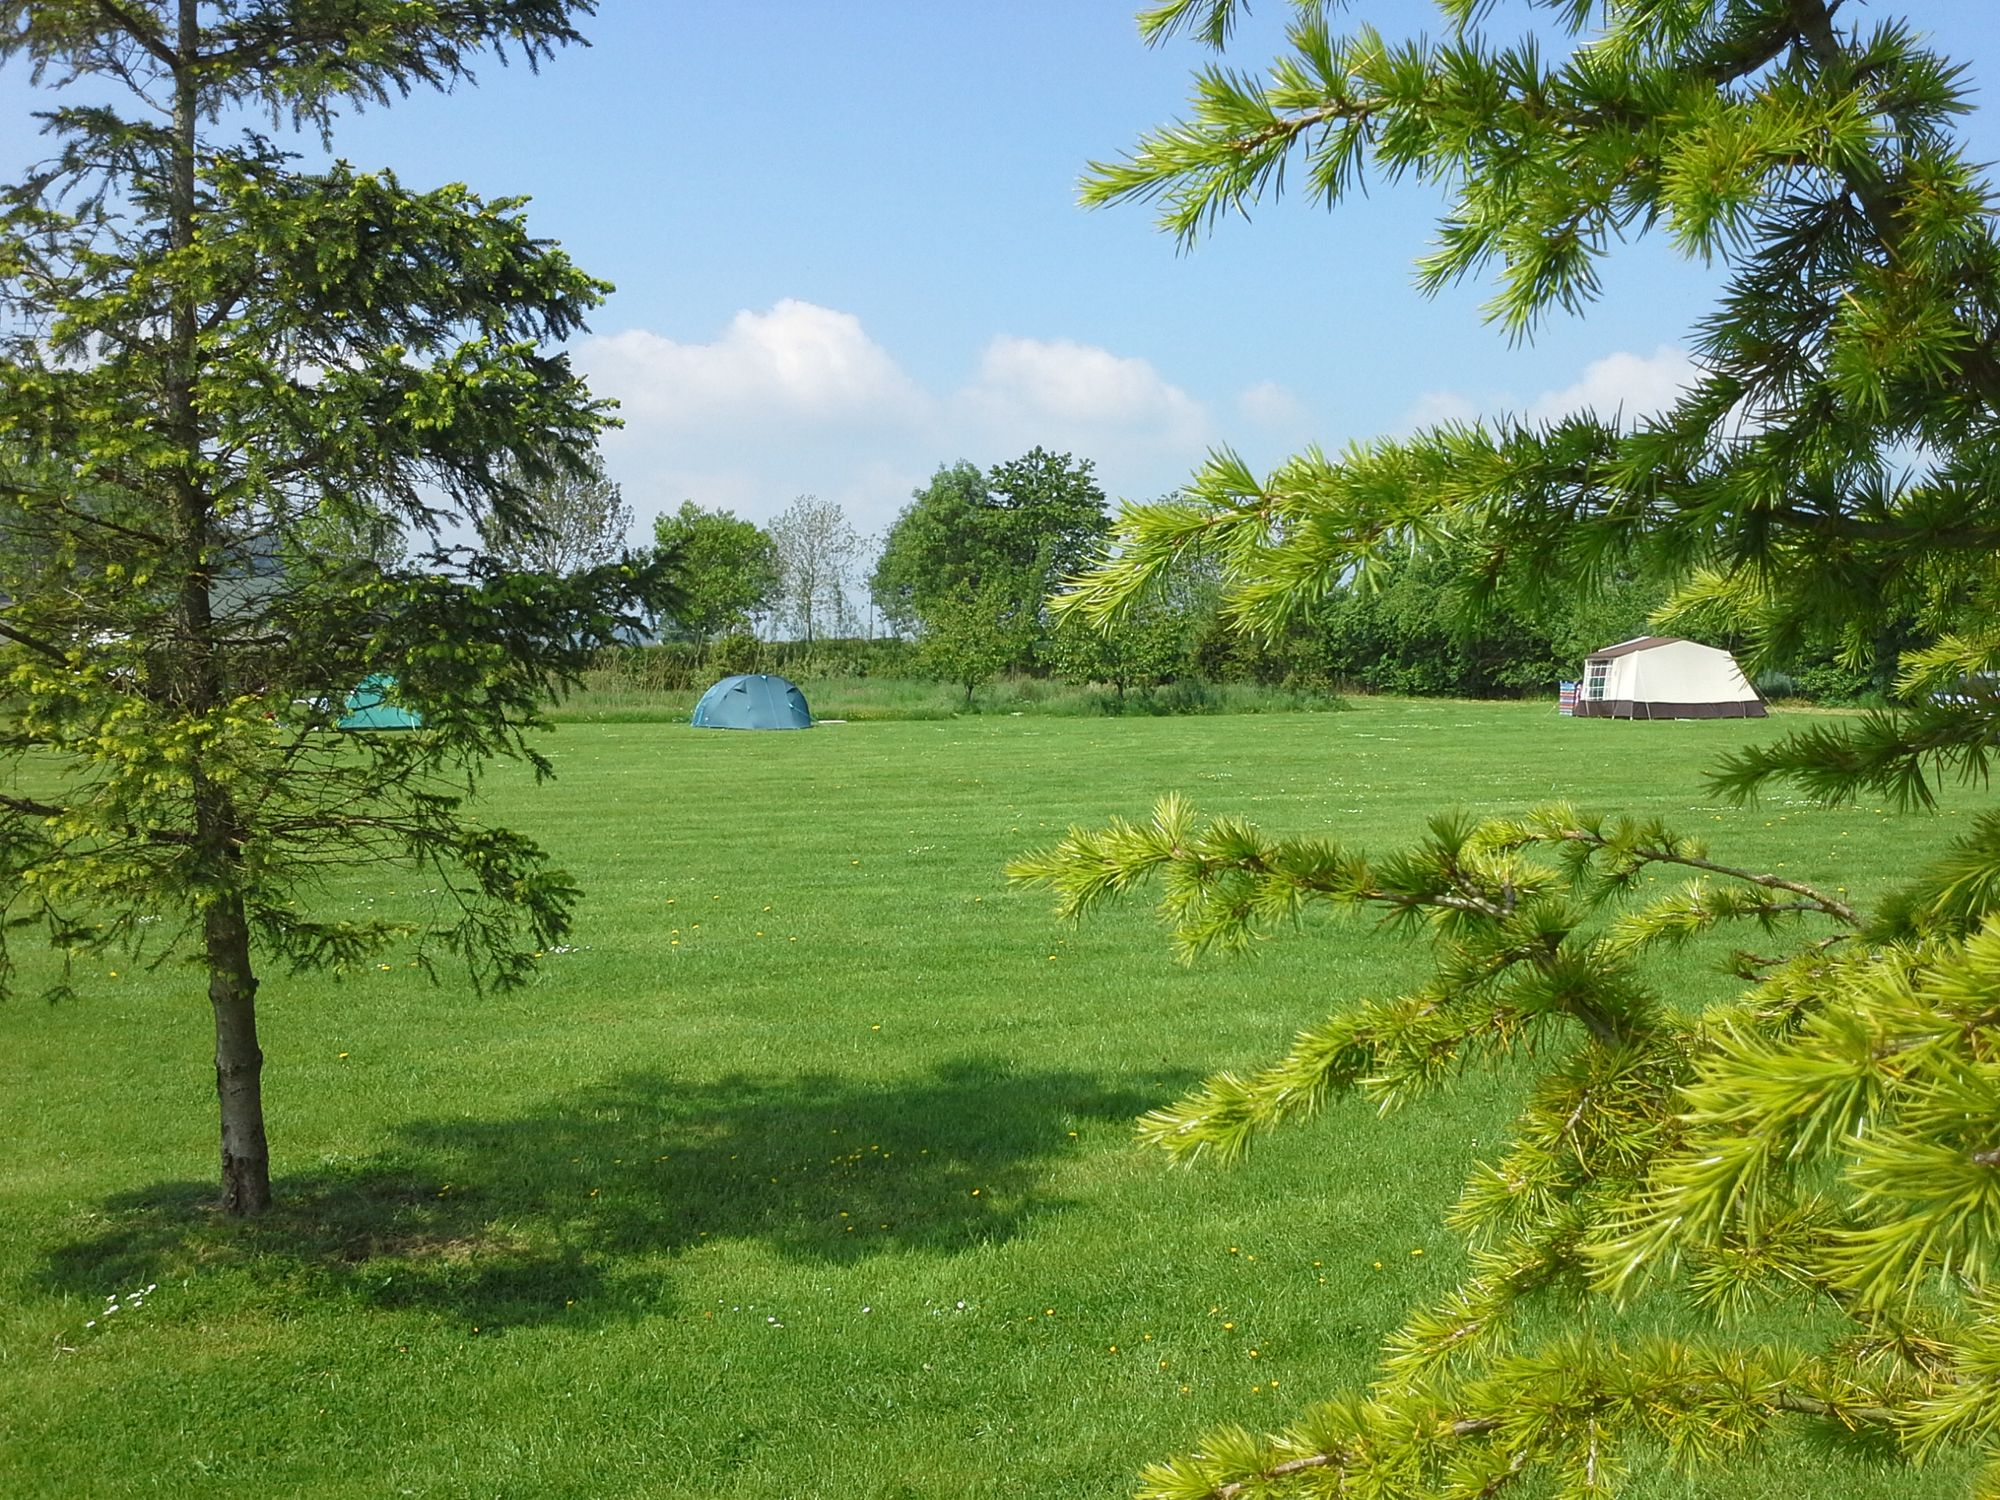 Campsites in the Shropshire Hills Area of Outstanding Natural Beauty